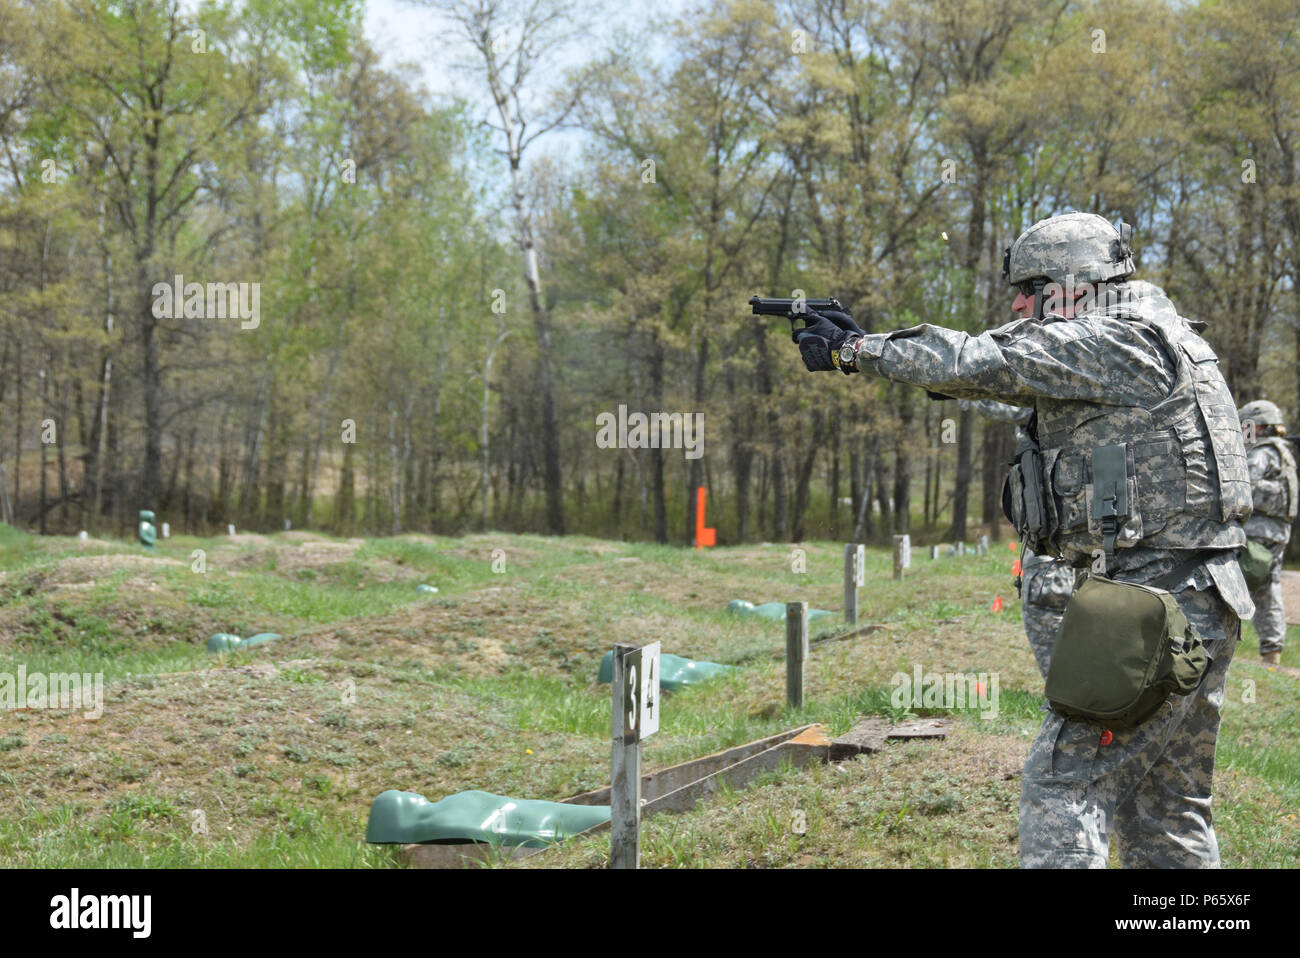 5f8bb3c6bb5 Pop Up Targets Stock Photos   Pop Up Targets Stock Images - Alamy